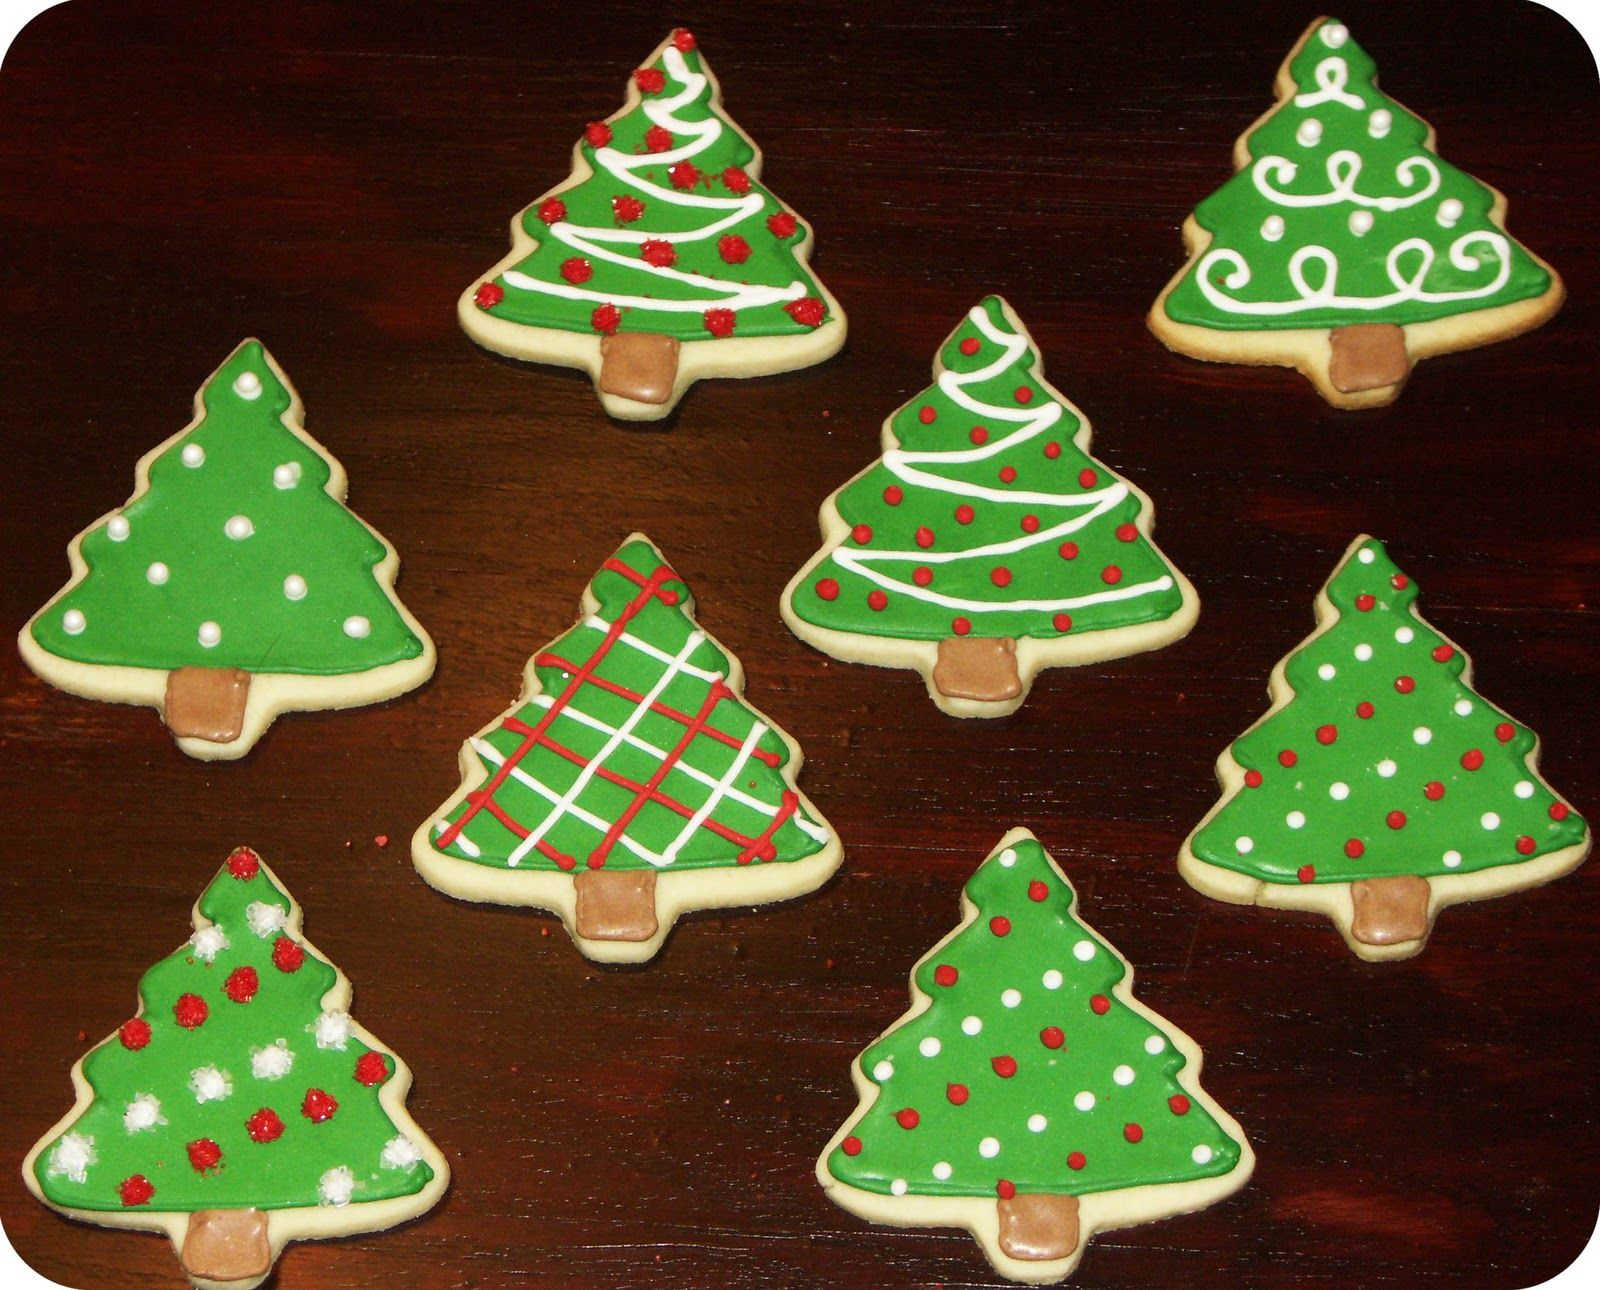 cookie decorating ideas If you don't see the design you